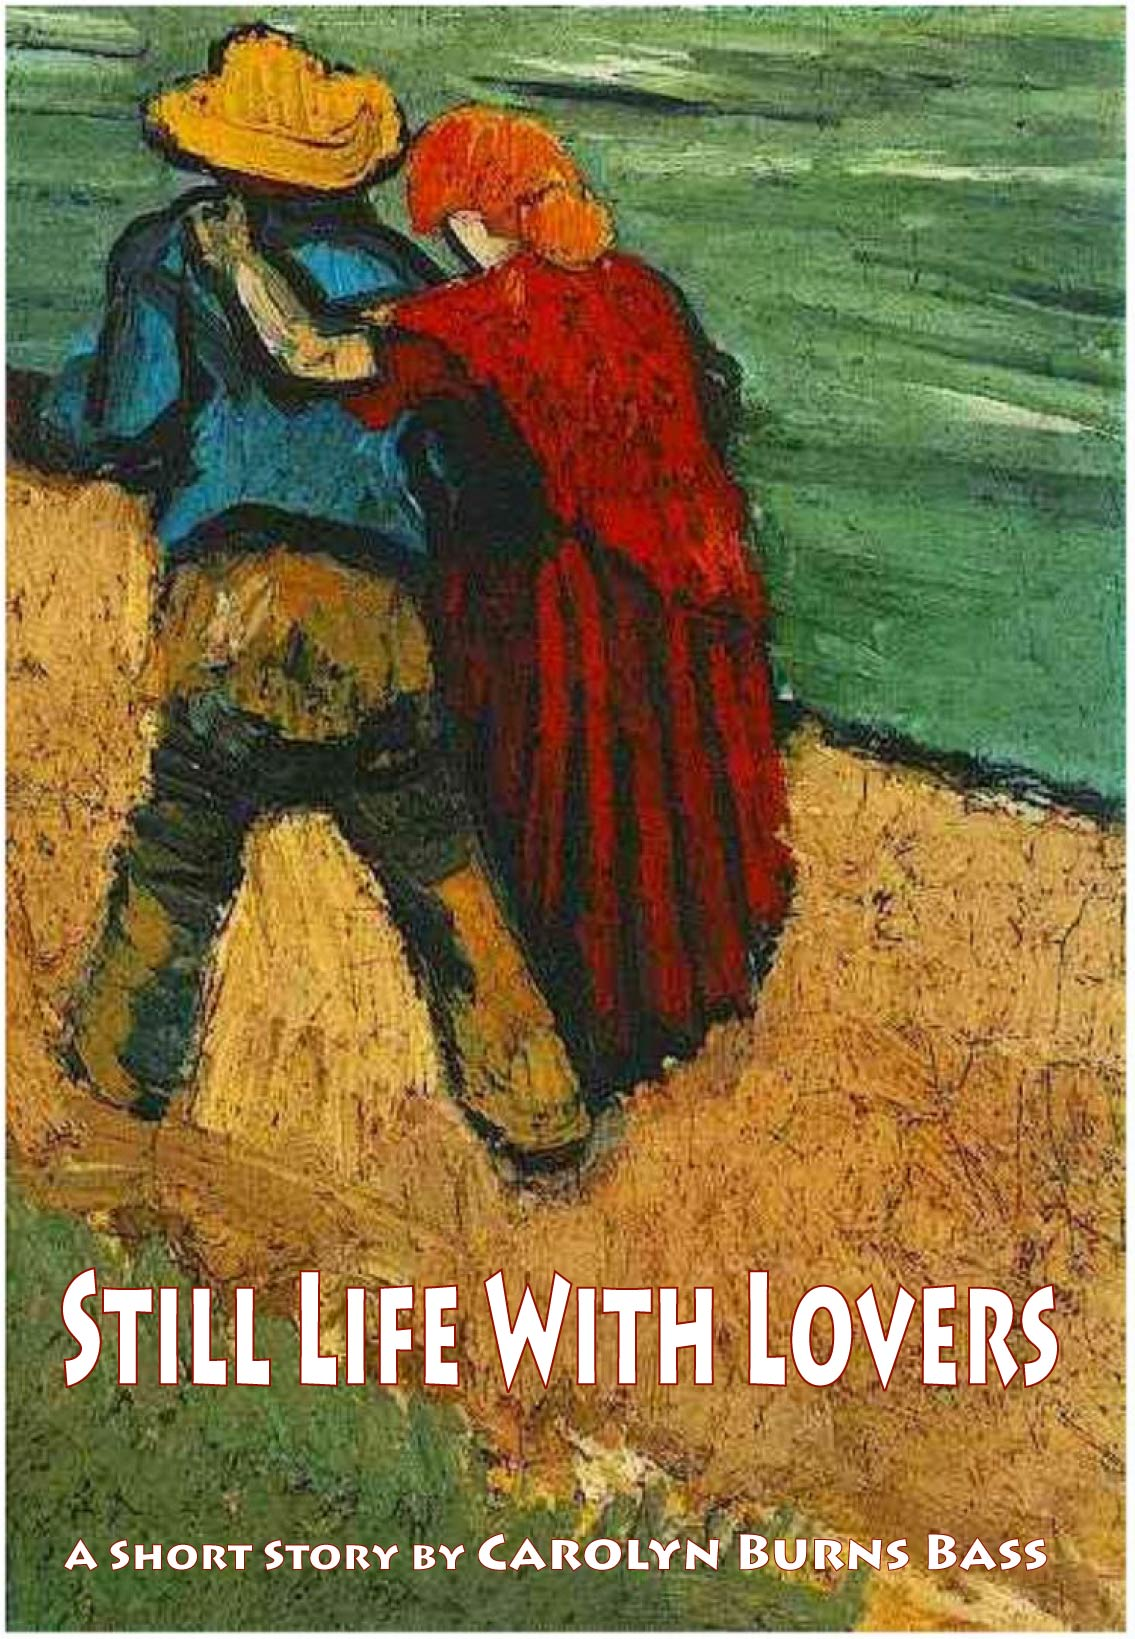 Still Life With Lovers by Carolyn Burns Bass